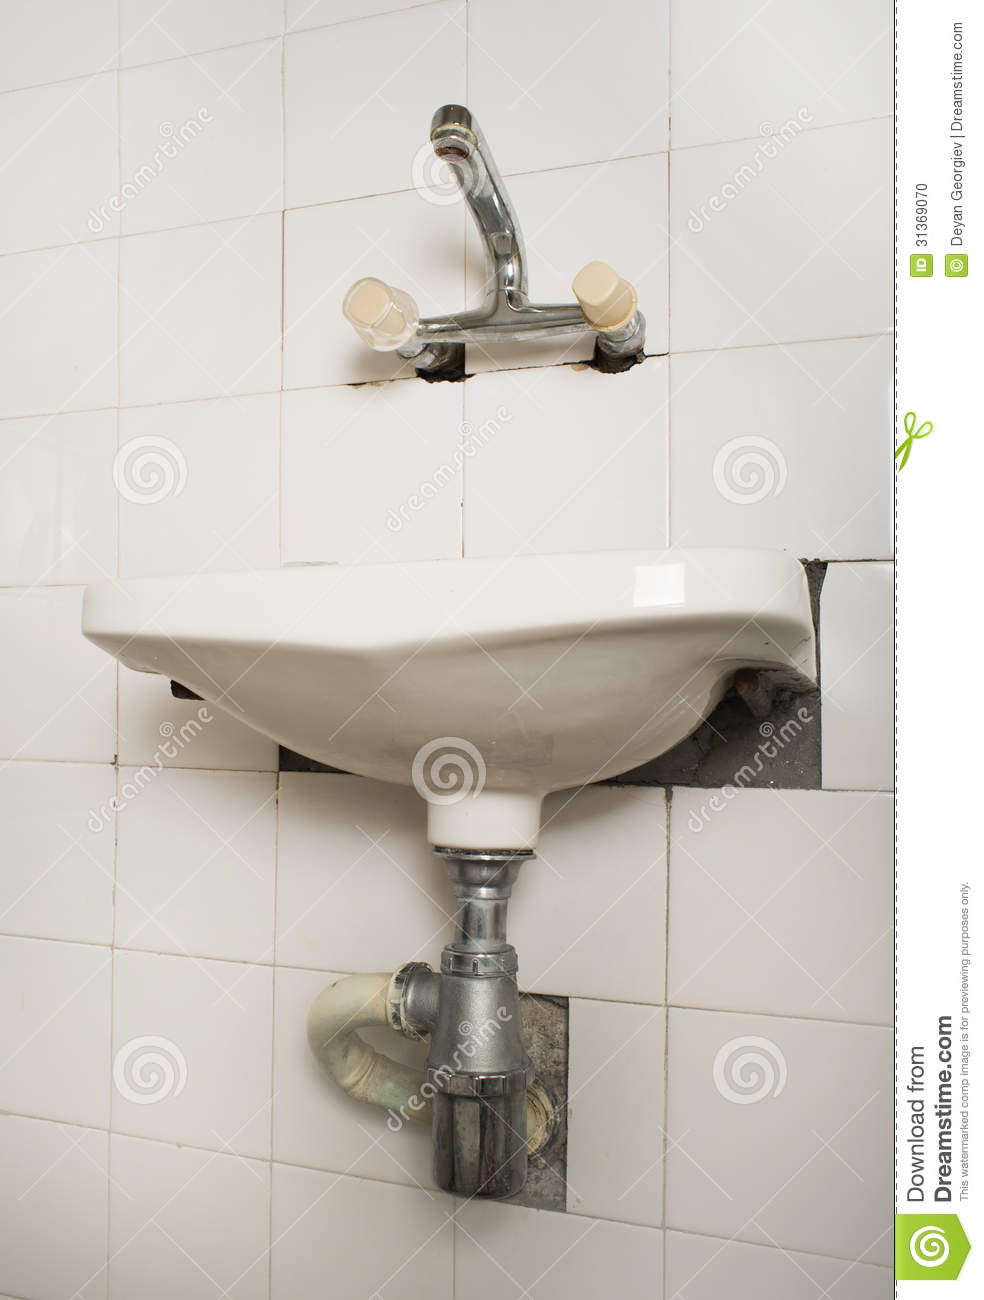 Kitchen Sink Pipes : Sink And Pipes Stock Photo - Image: 31369070